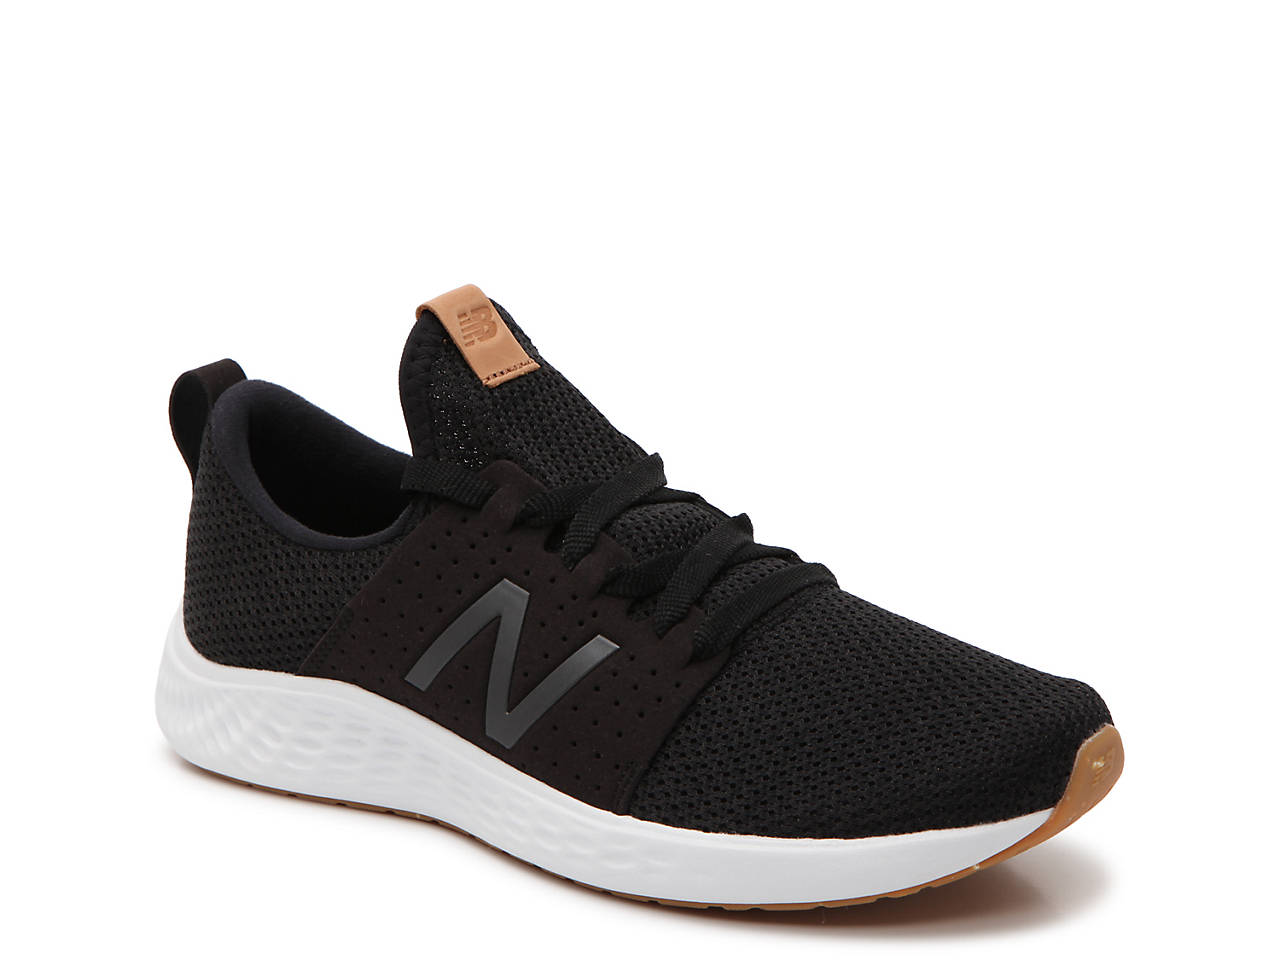 03d4153a93a New Balance Fresh Foam Sport Lightweight Running Shoe - Women s ...